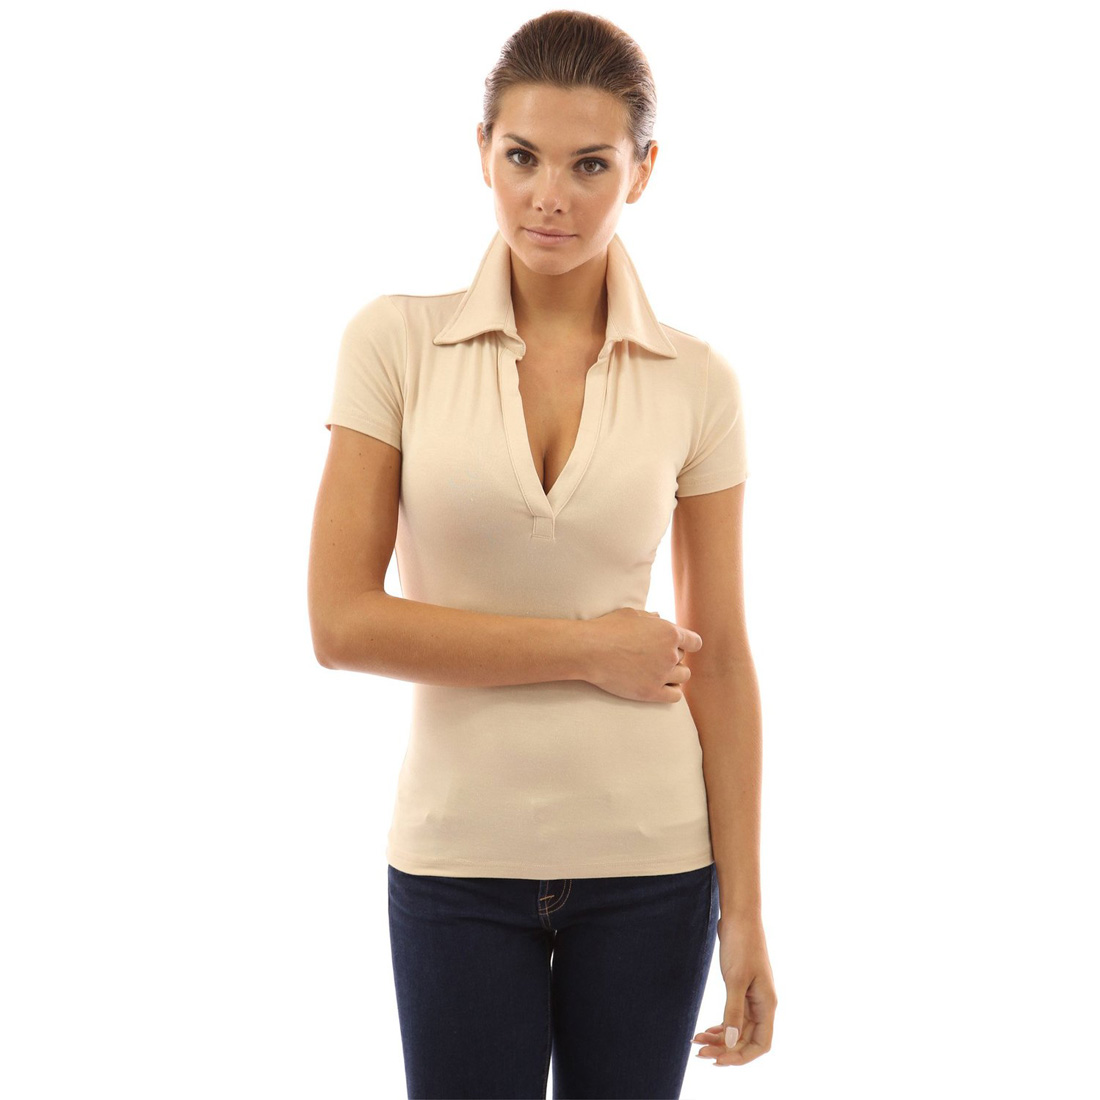 Womens v neck long sleeve polo shirt slim fit casual for Women s sunscreen shirts